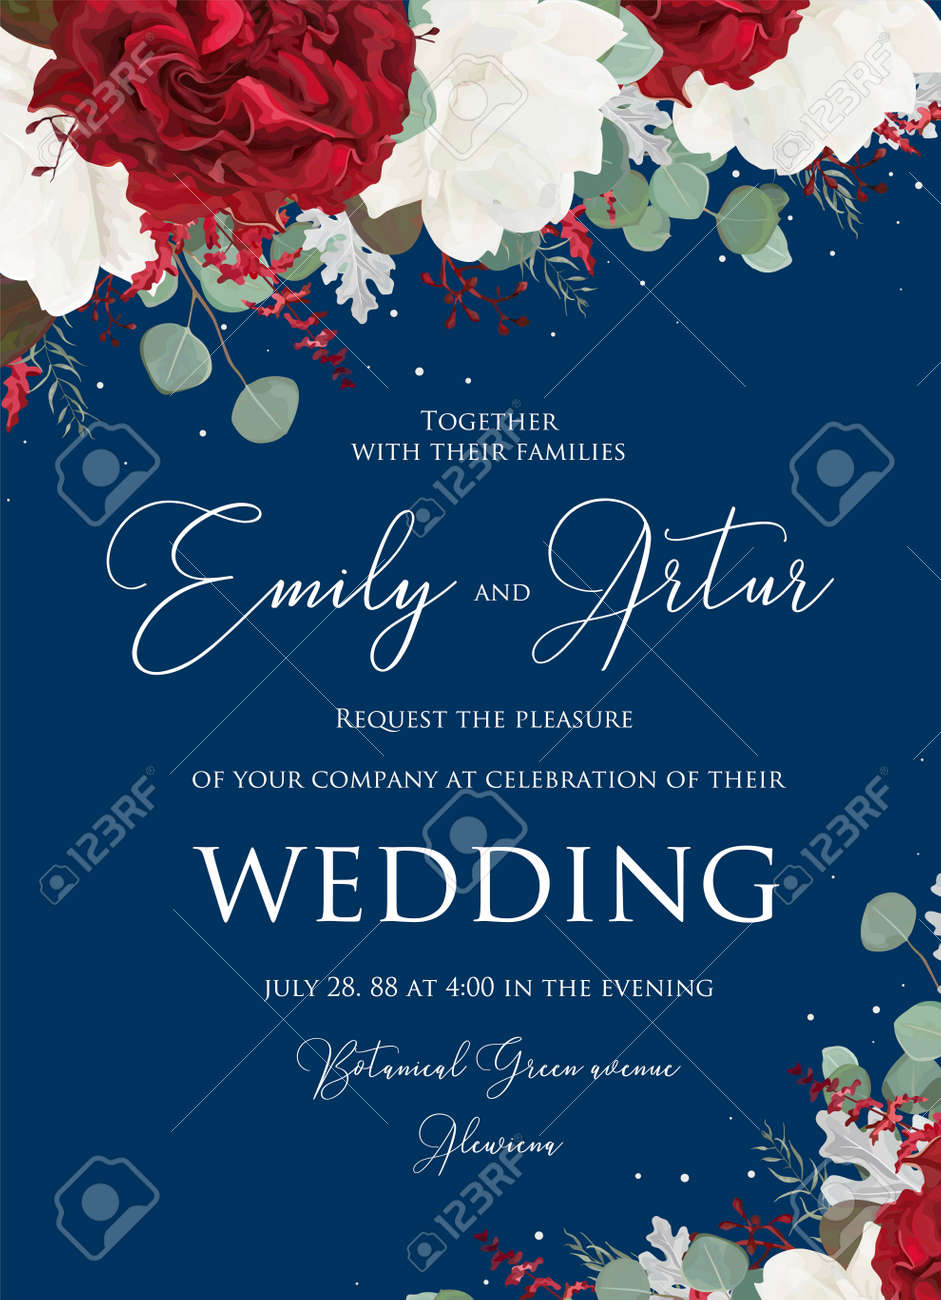 Wedding floral invite, invitation save the date card design with red and white garden rose flowers, seeded eucalyptus branches, leaves, amaranthus bouquet on navy blue background. Vector cute template - 95160890